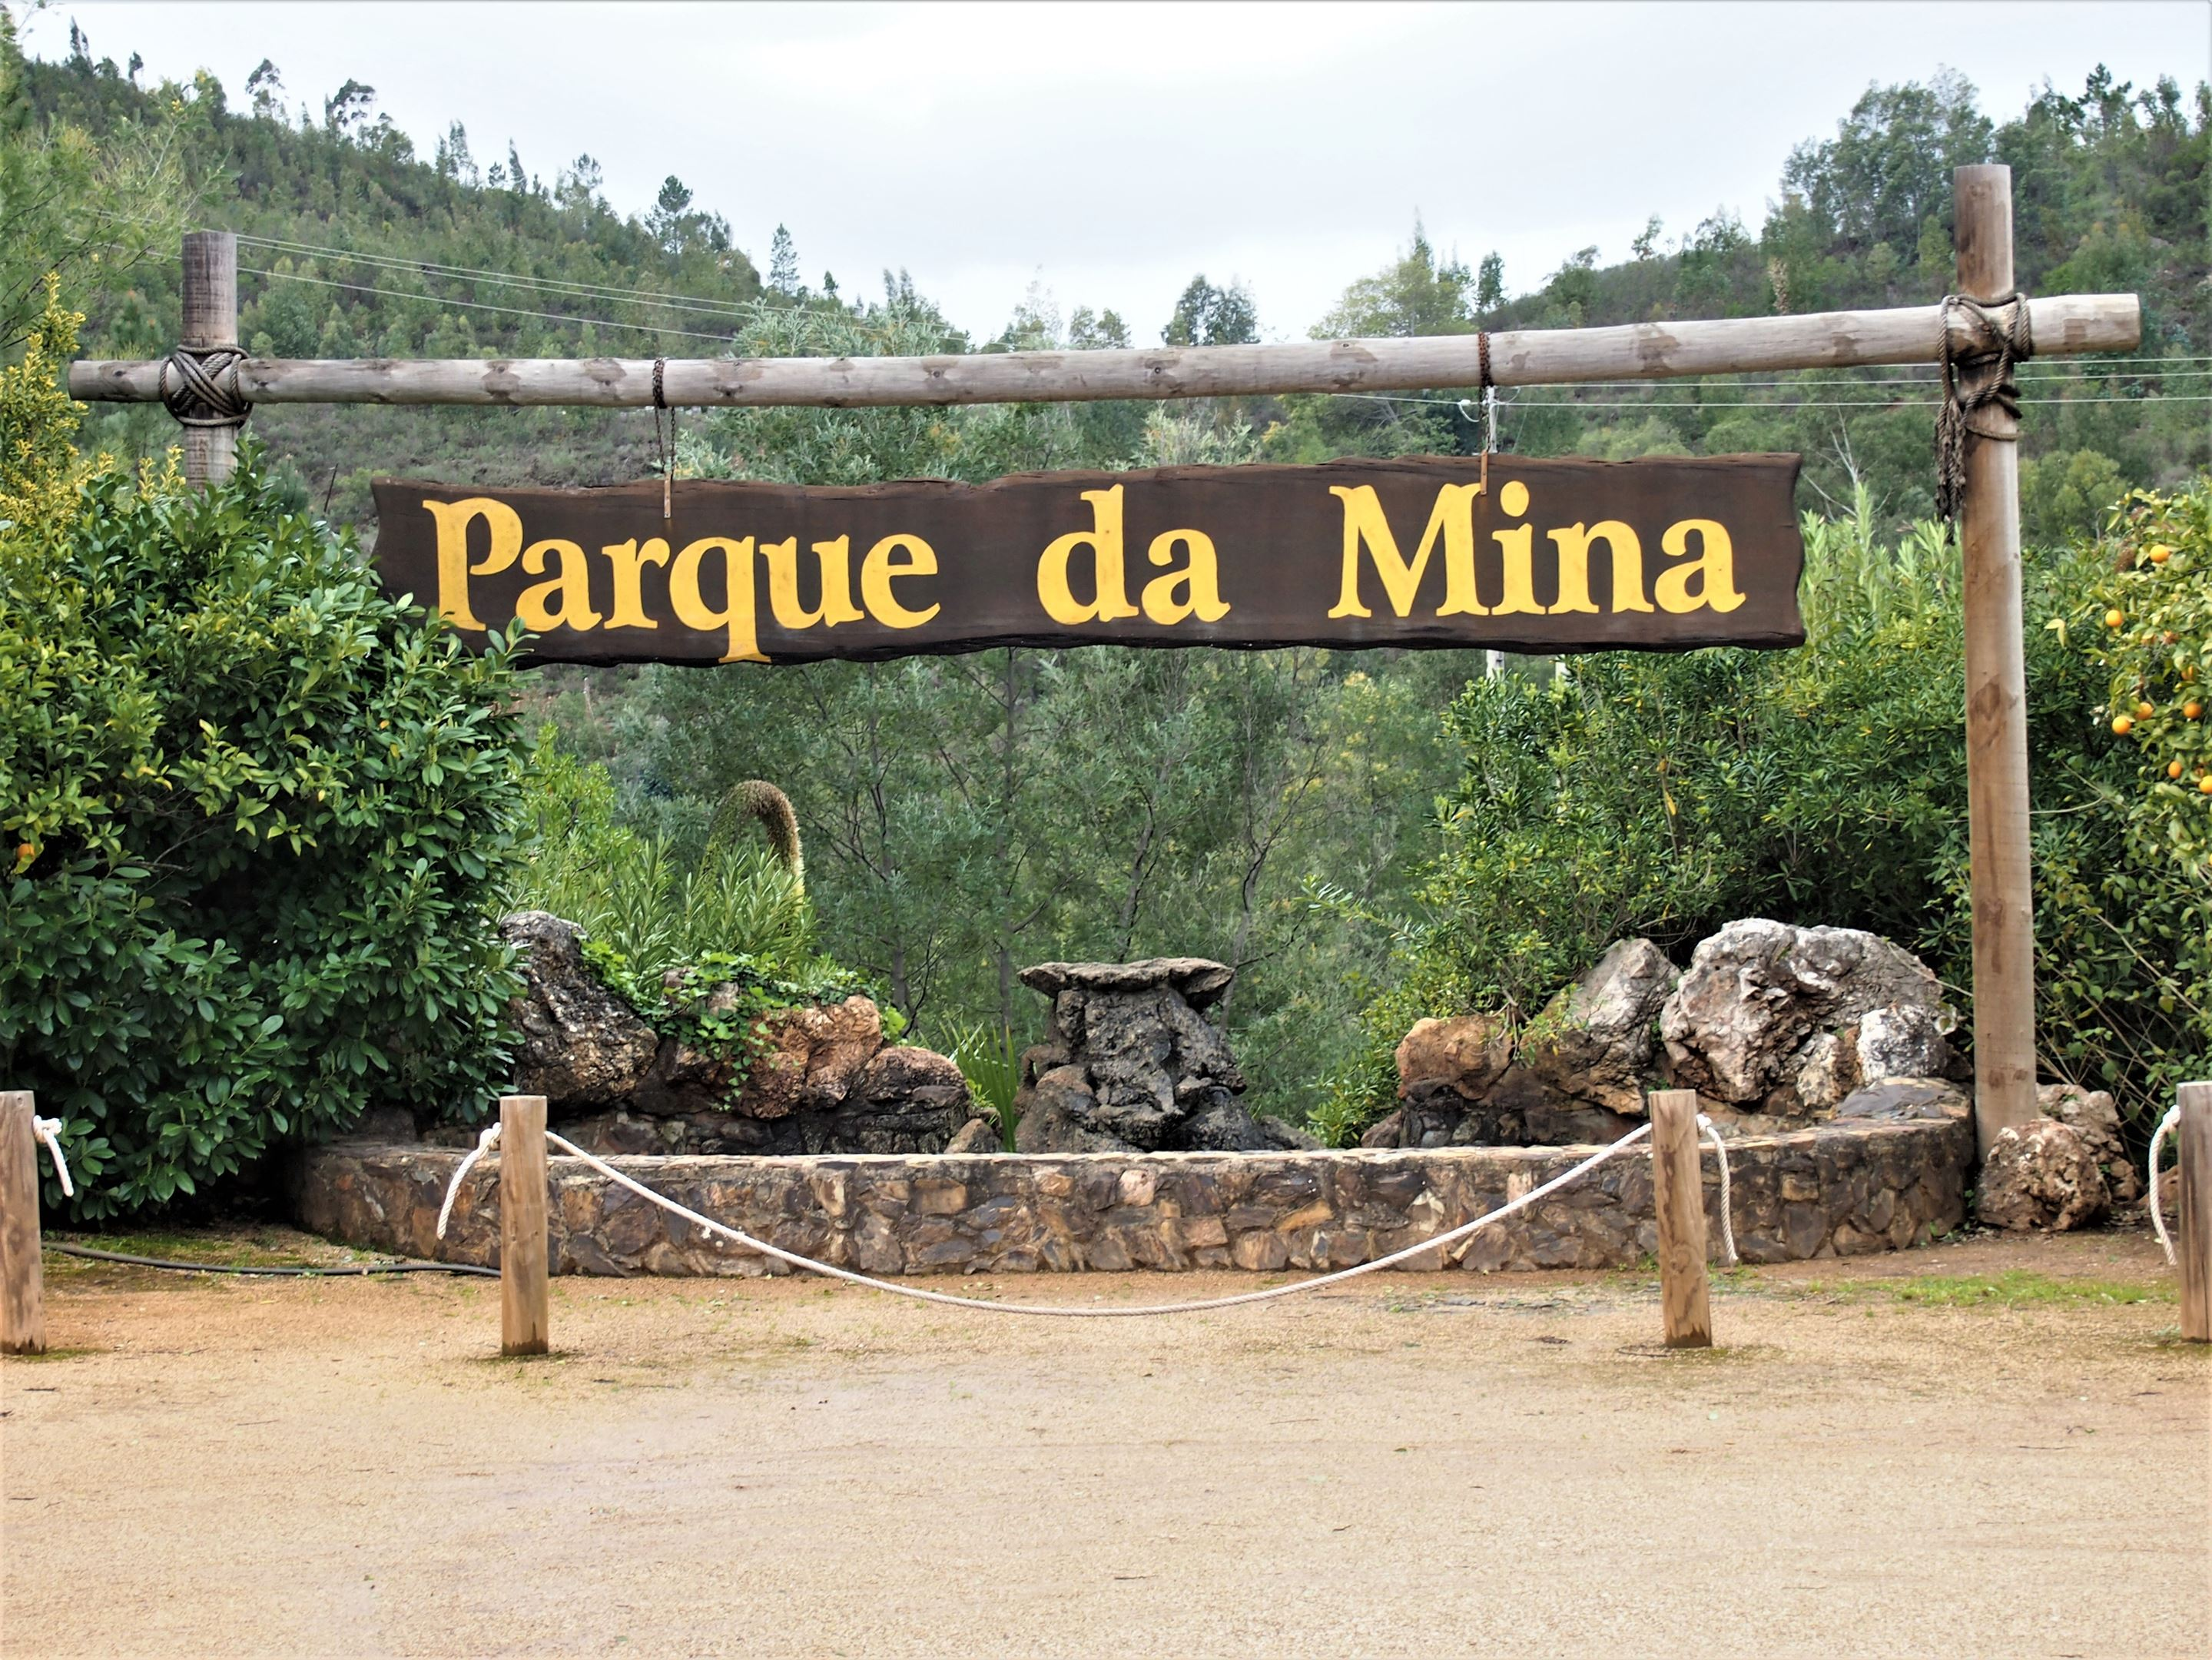 Parque da Mina, Monchique